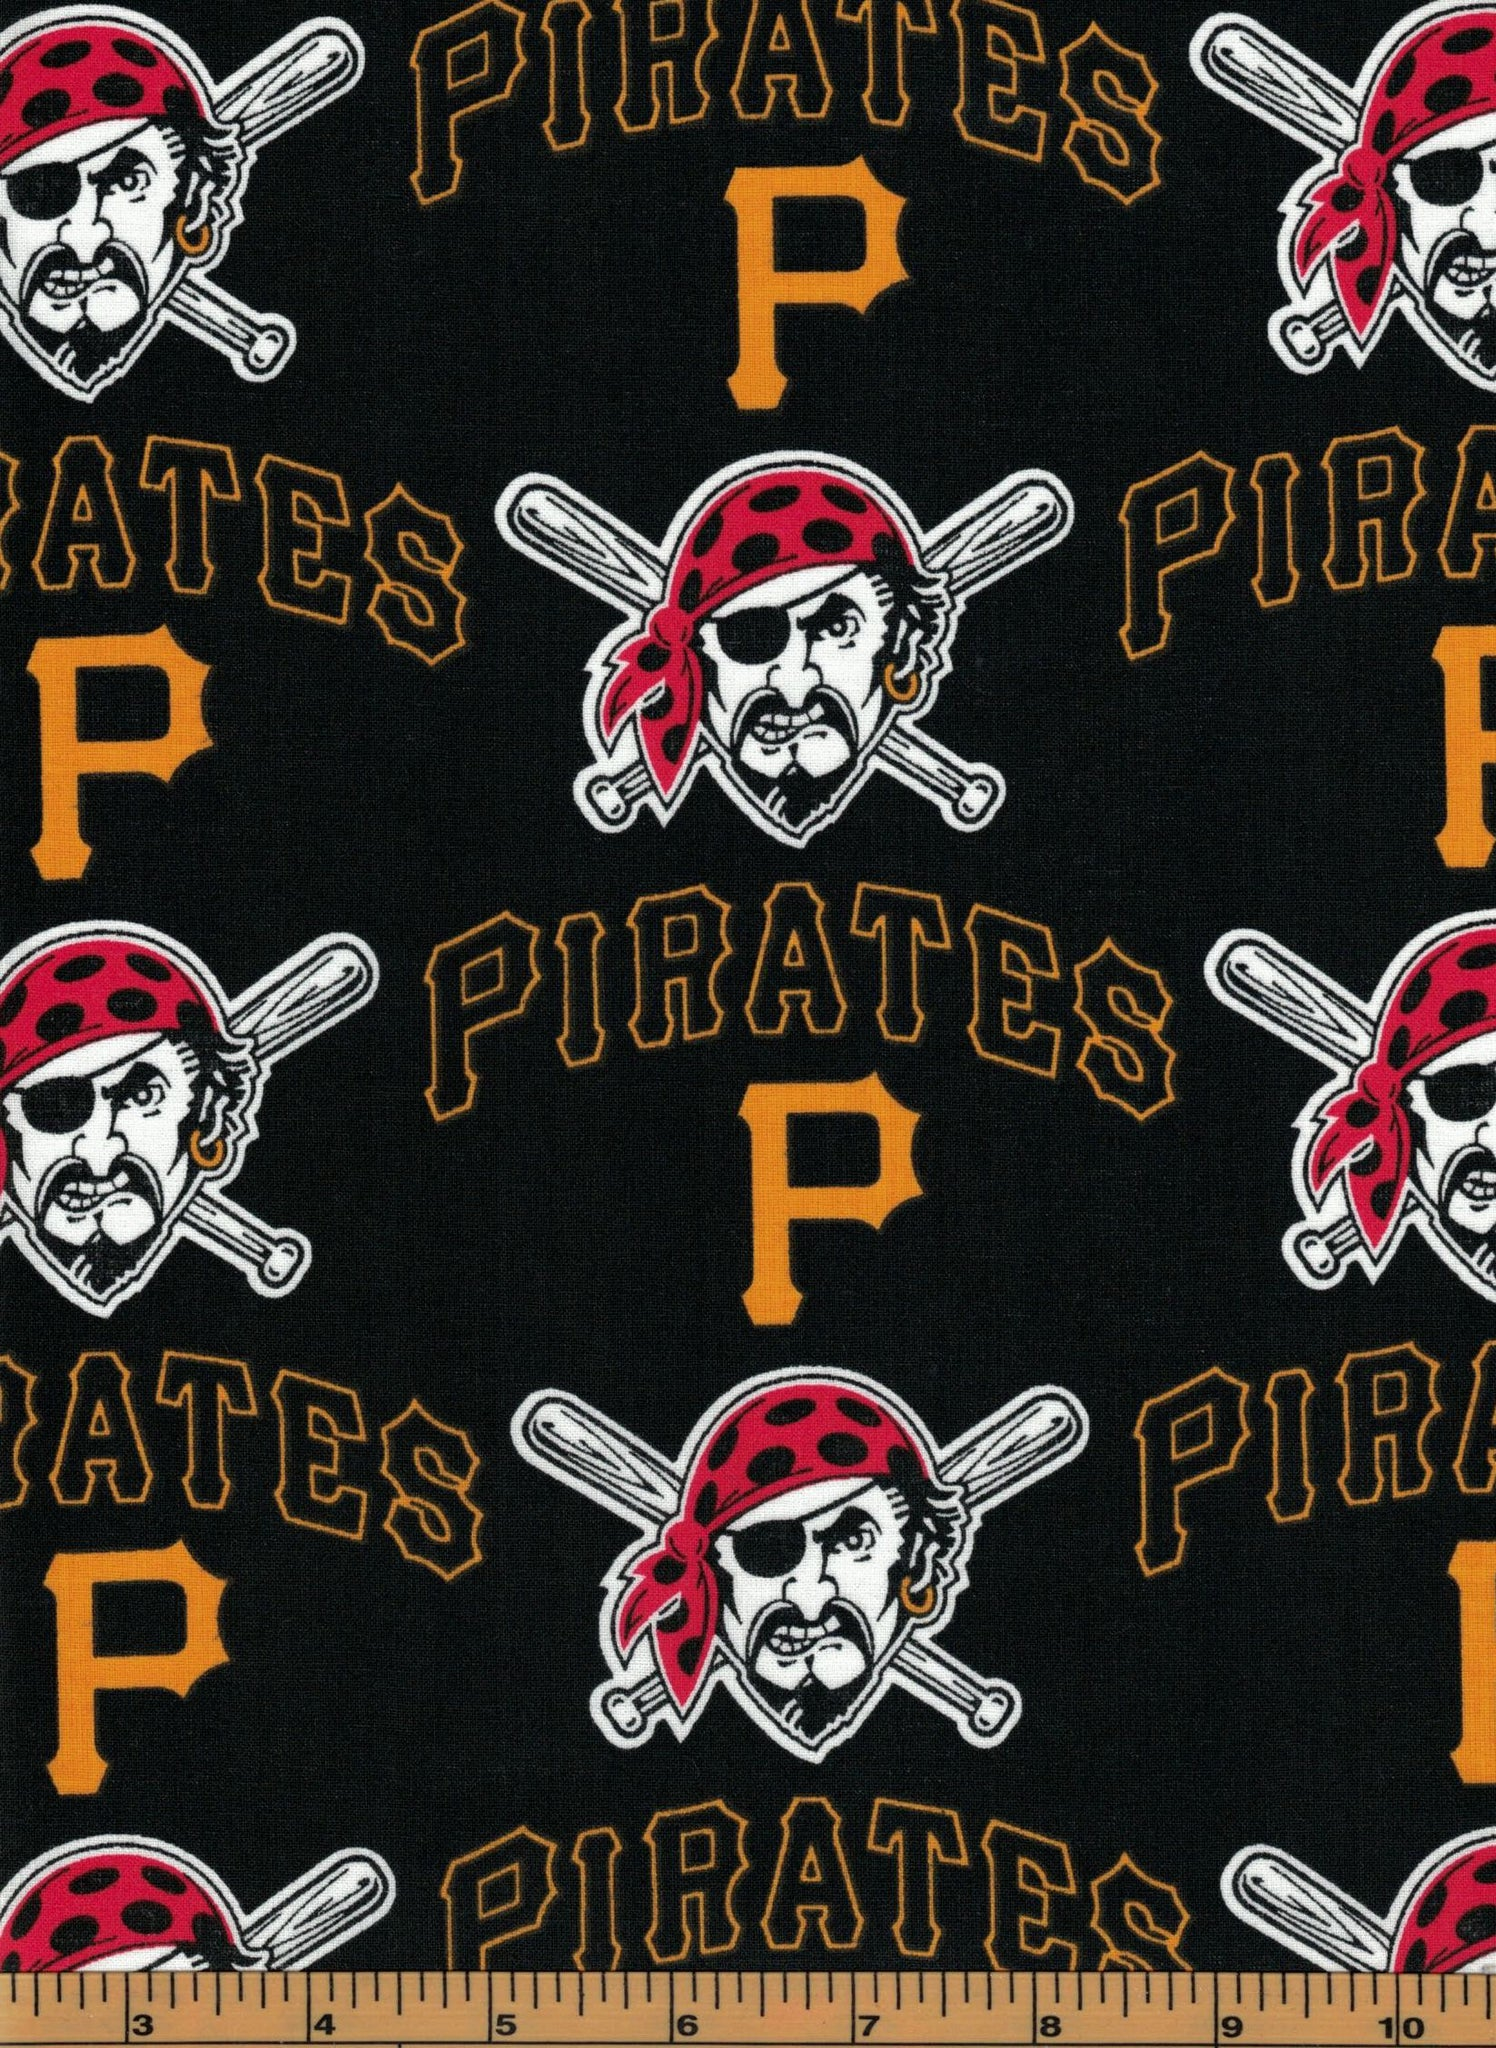 Pittsburgh Pirates Baseball Fabric- MLB - 100% Cotton High Quality Fabric- by Fabric Traditions